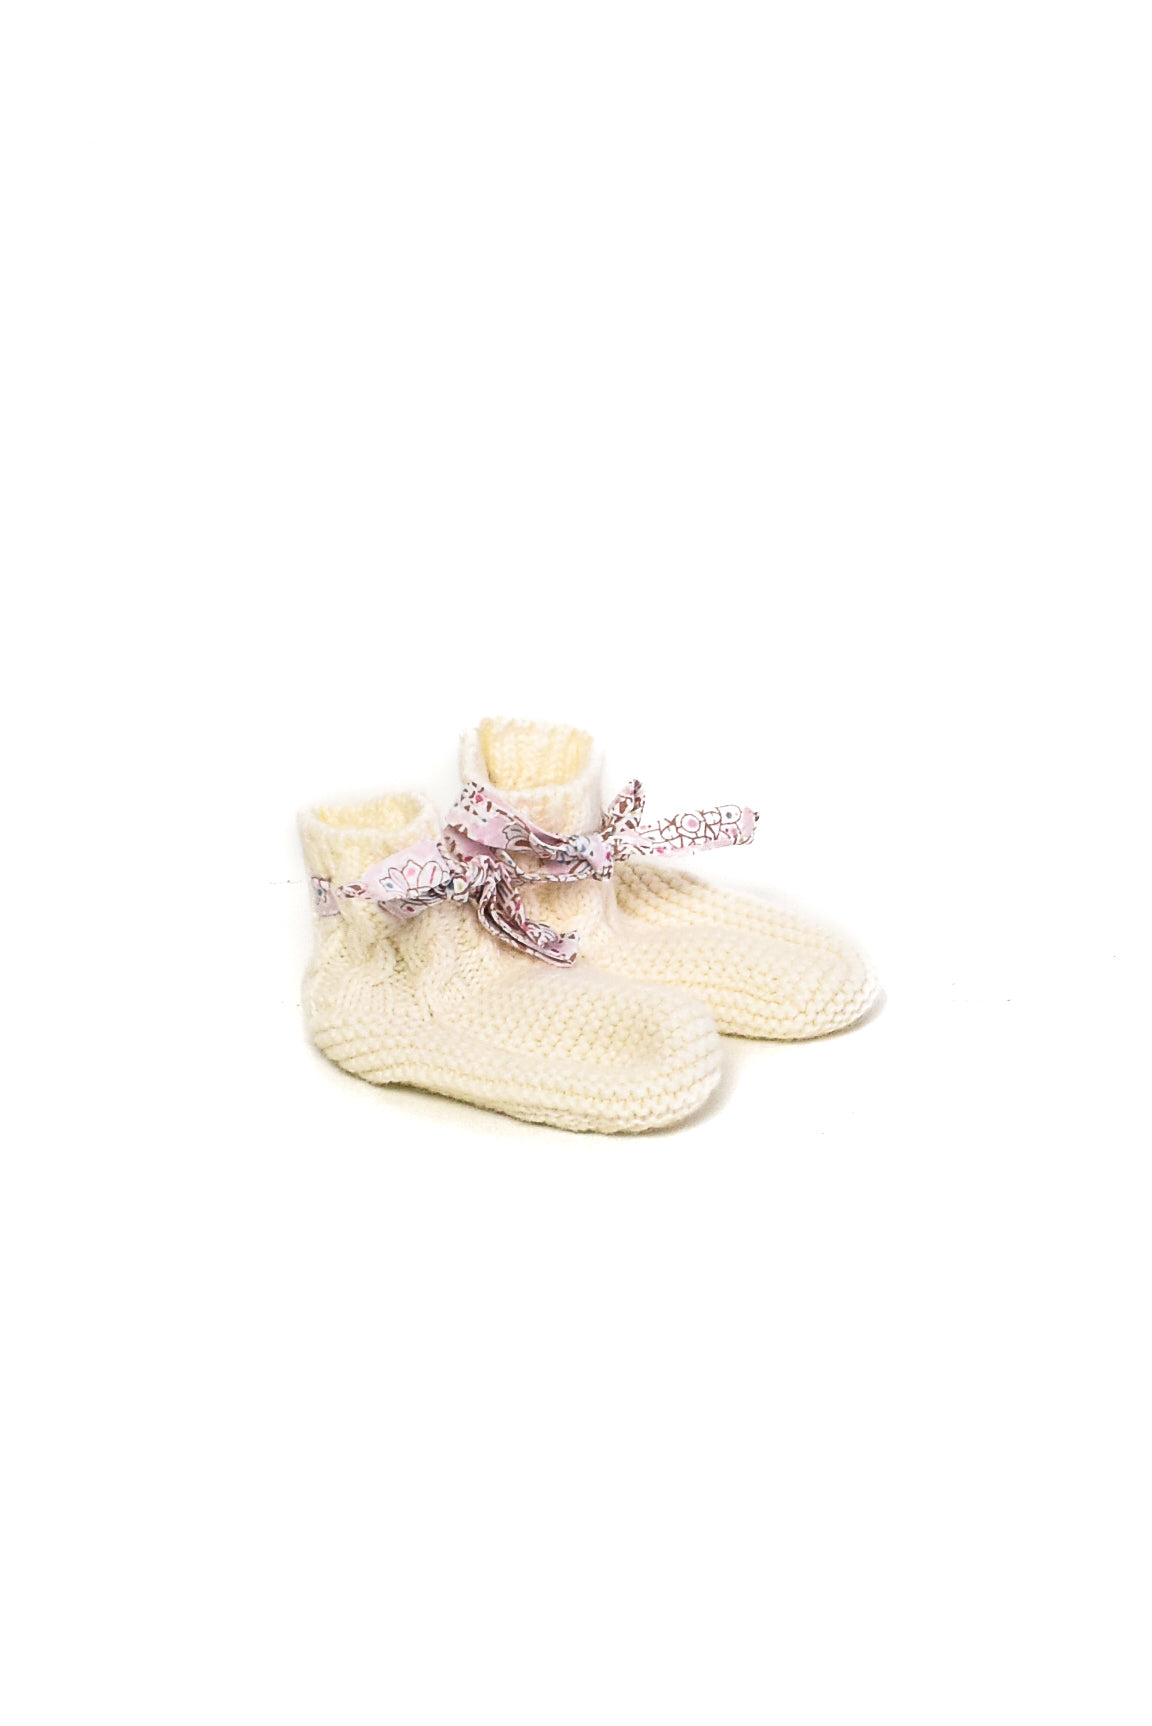 10007713 Jacadi Baby~ Booties 0-6M (EU 16-17) at Retykle